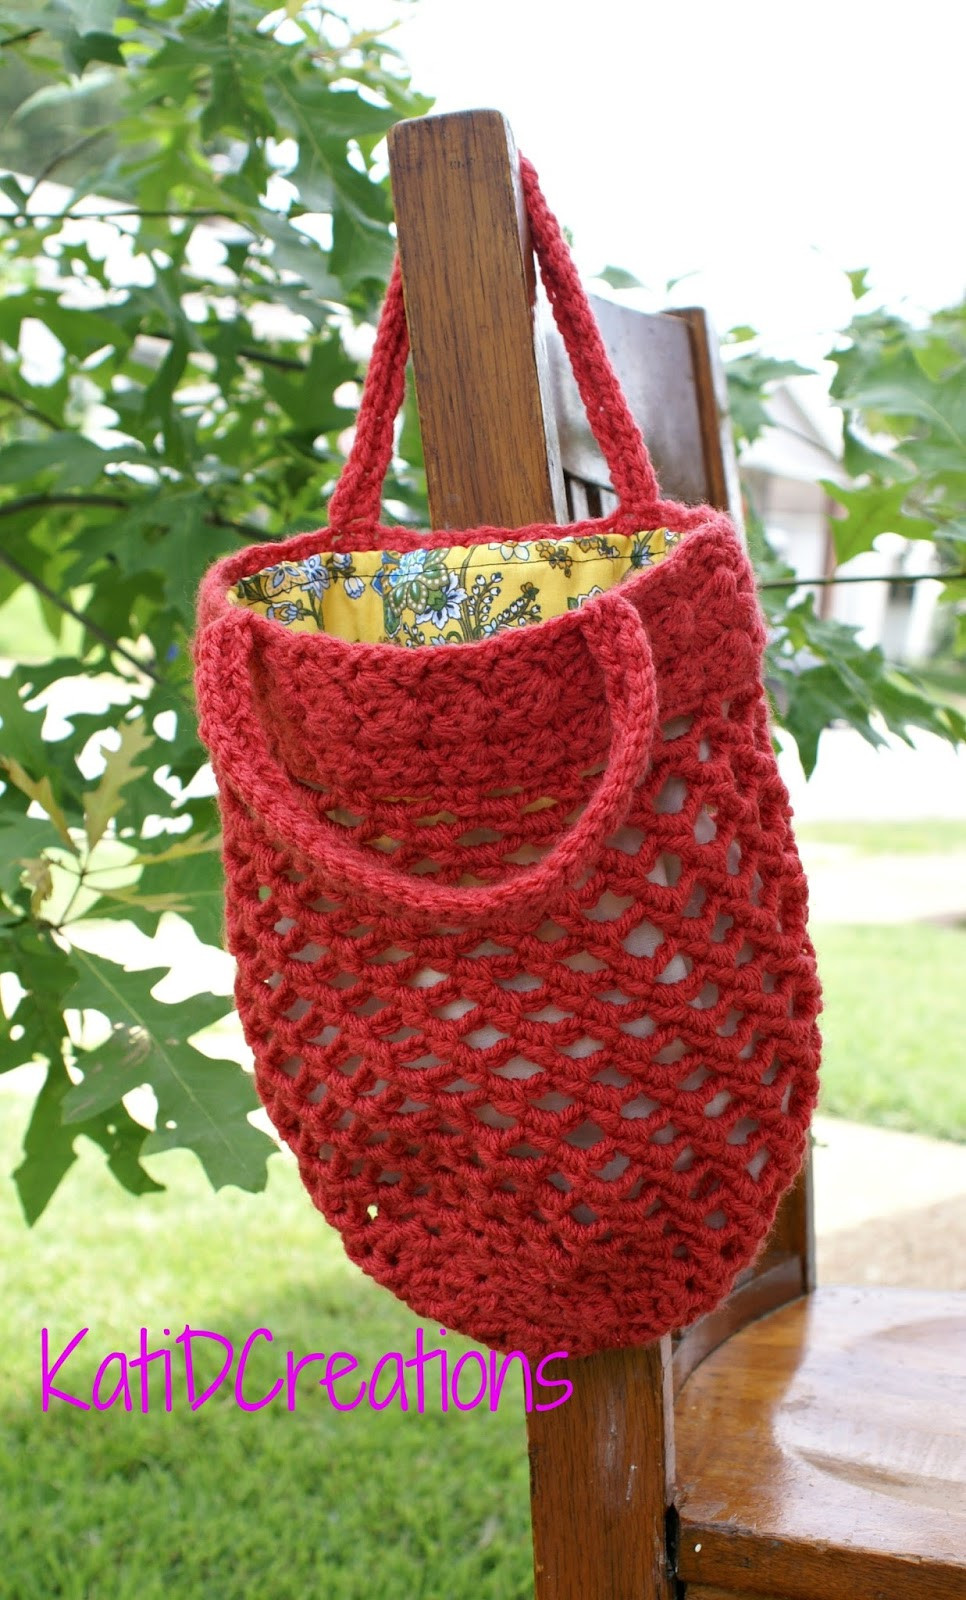 Awesome Fiber Flux Beautiful Beach Bags 16 Free Crochet Patterns Crochet tote Pattern Of New 42 Pics Crochet tote Pattern